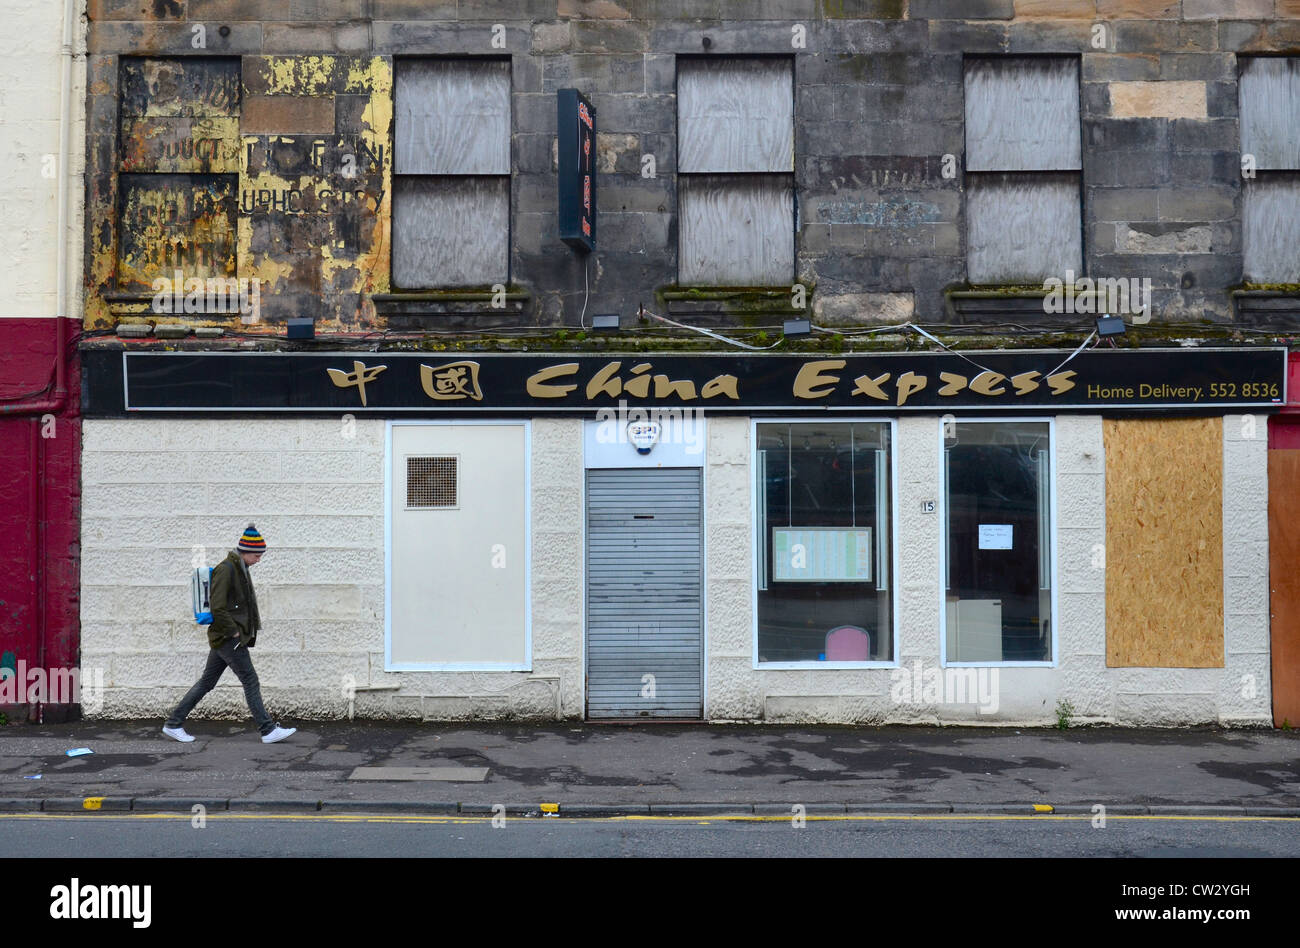 A lone figure walks by the China Express restaurant in a rather down at heel end of the Merchant City area of Glasgow. - Stock Image